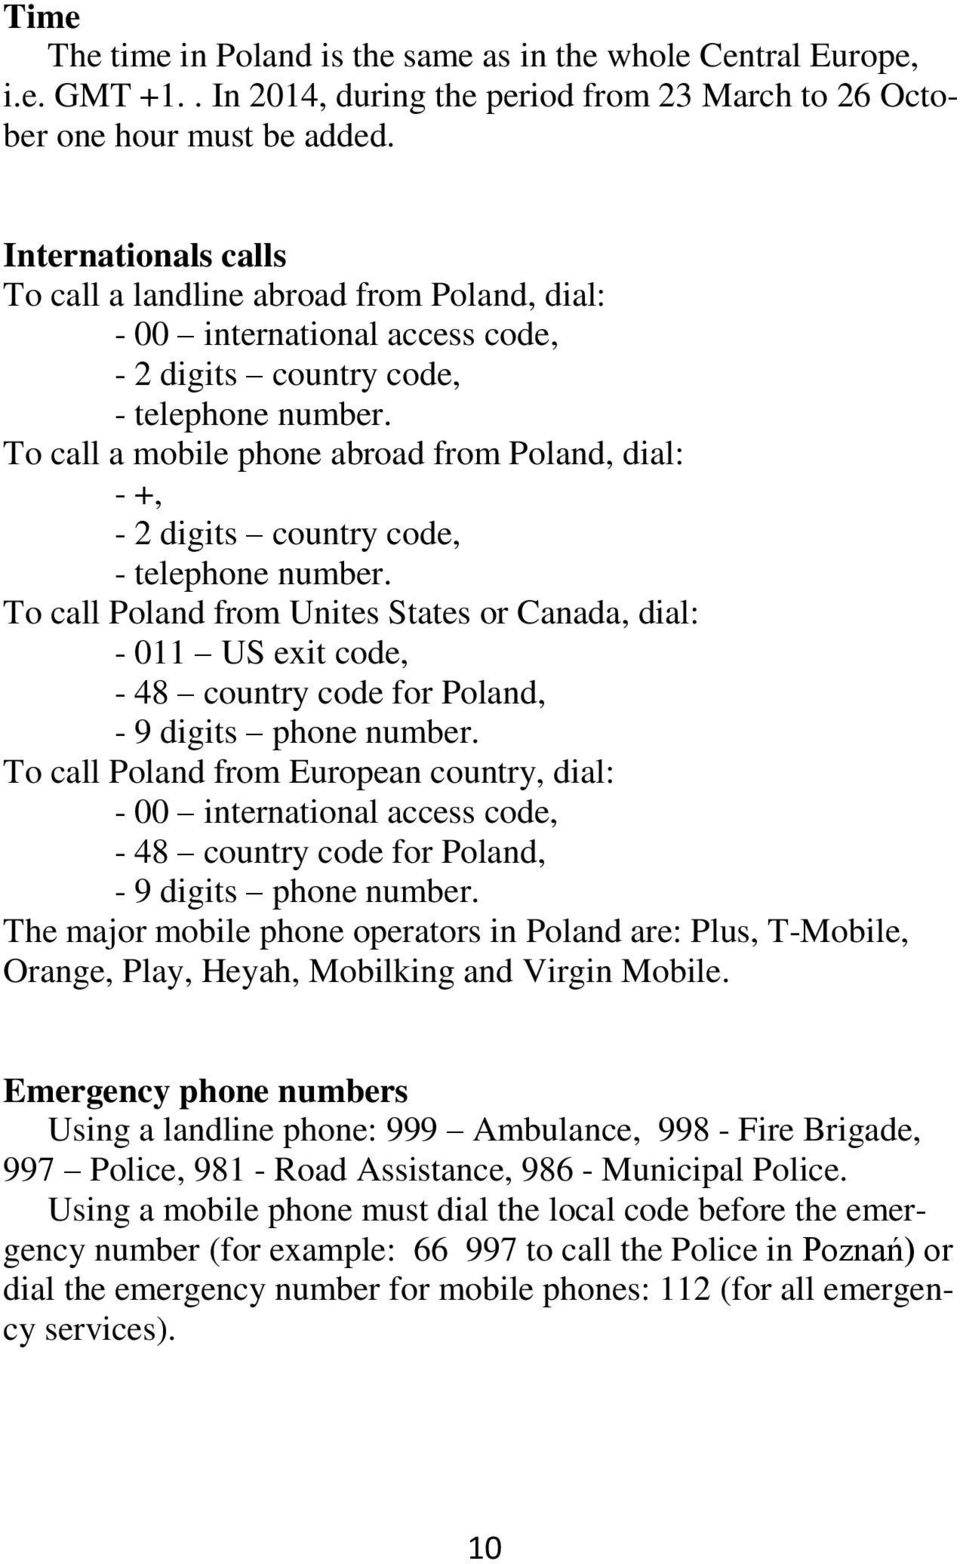 To call a mobile phone abroad from Poland, dial: - +, - 2 digits country code, - telephone number.